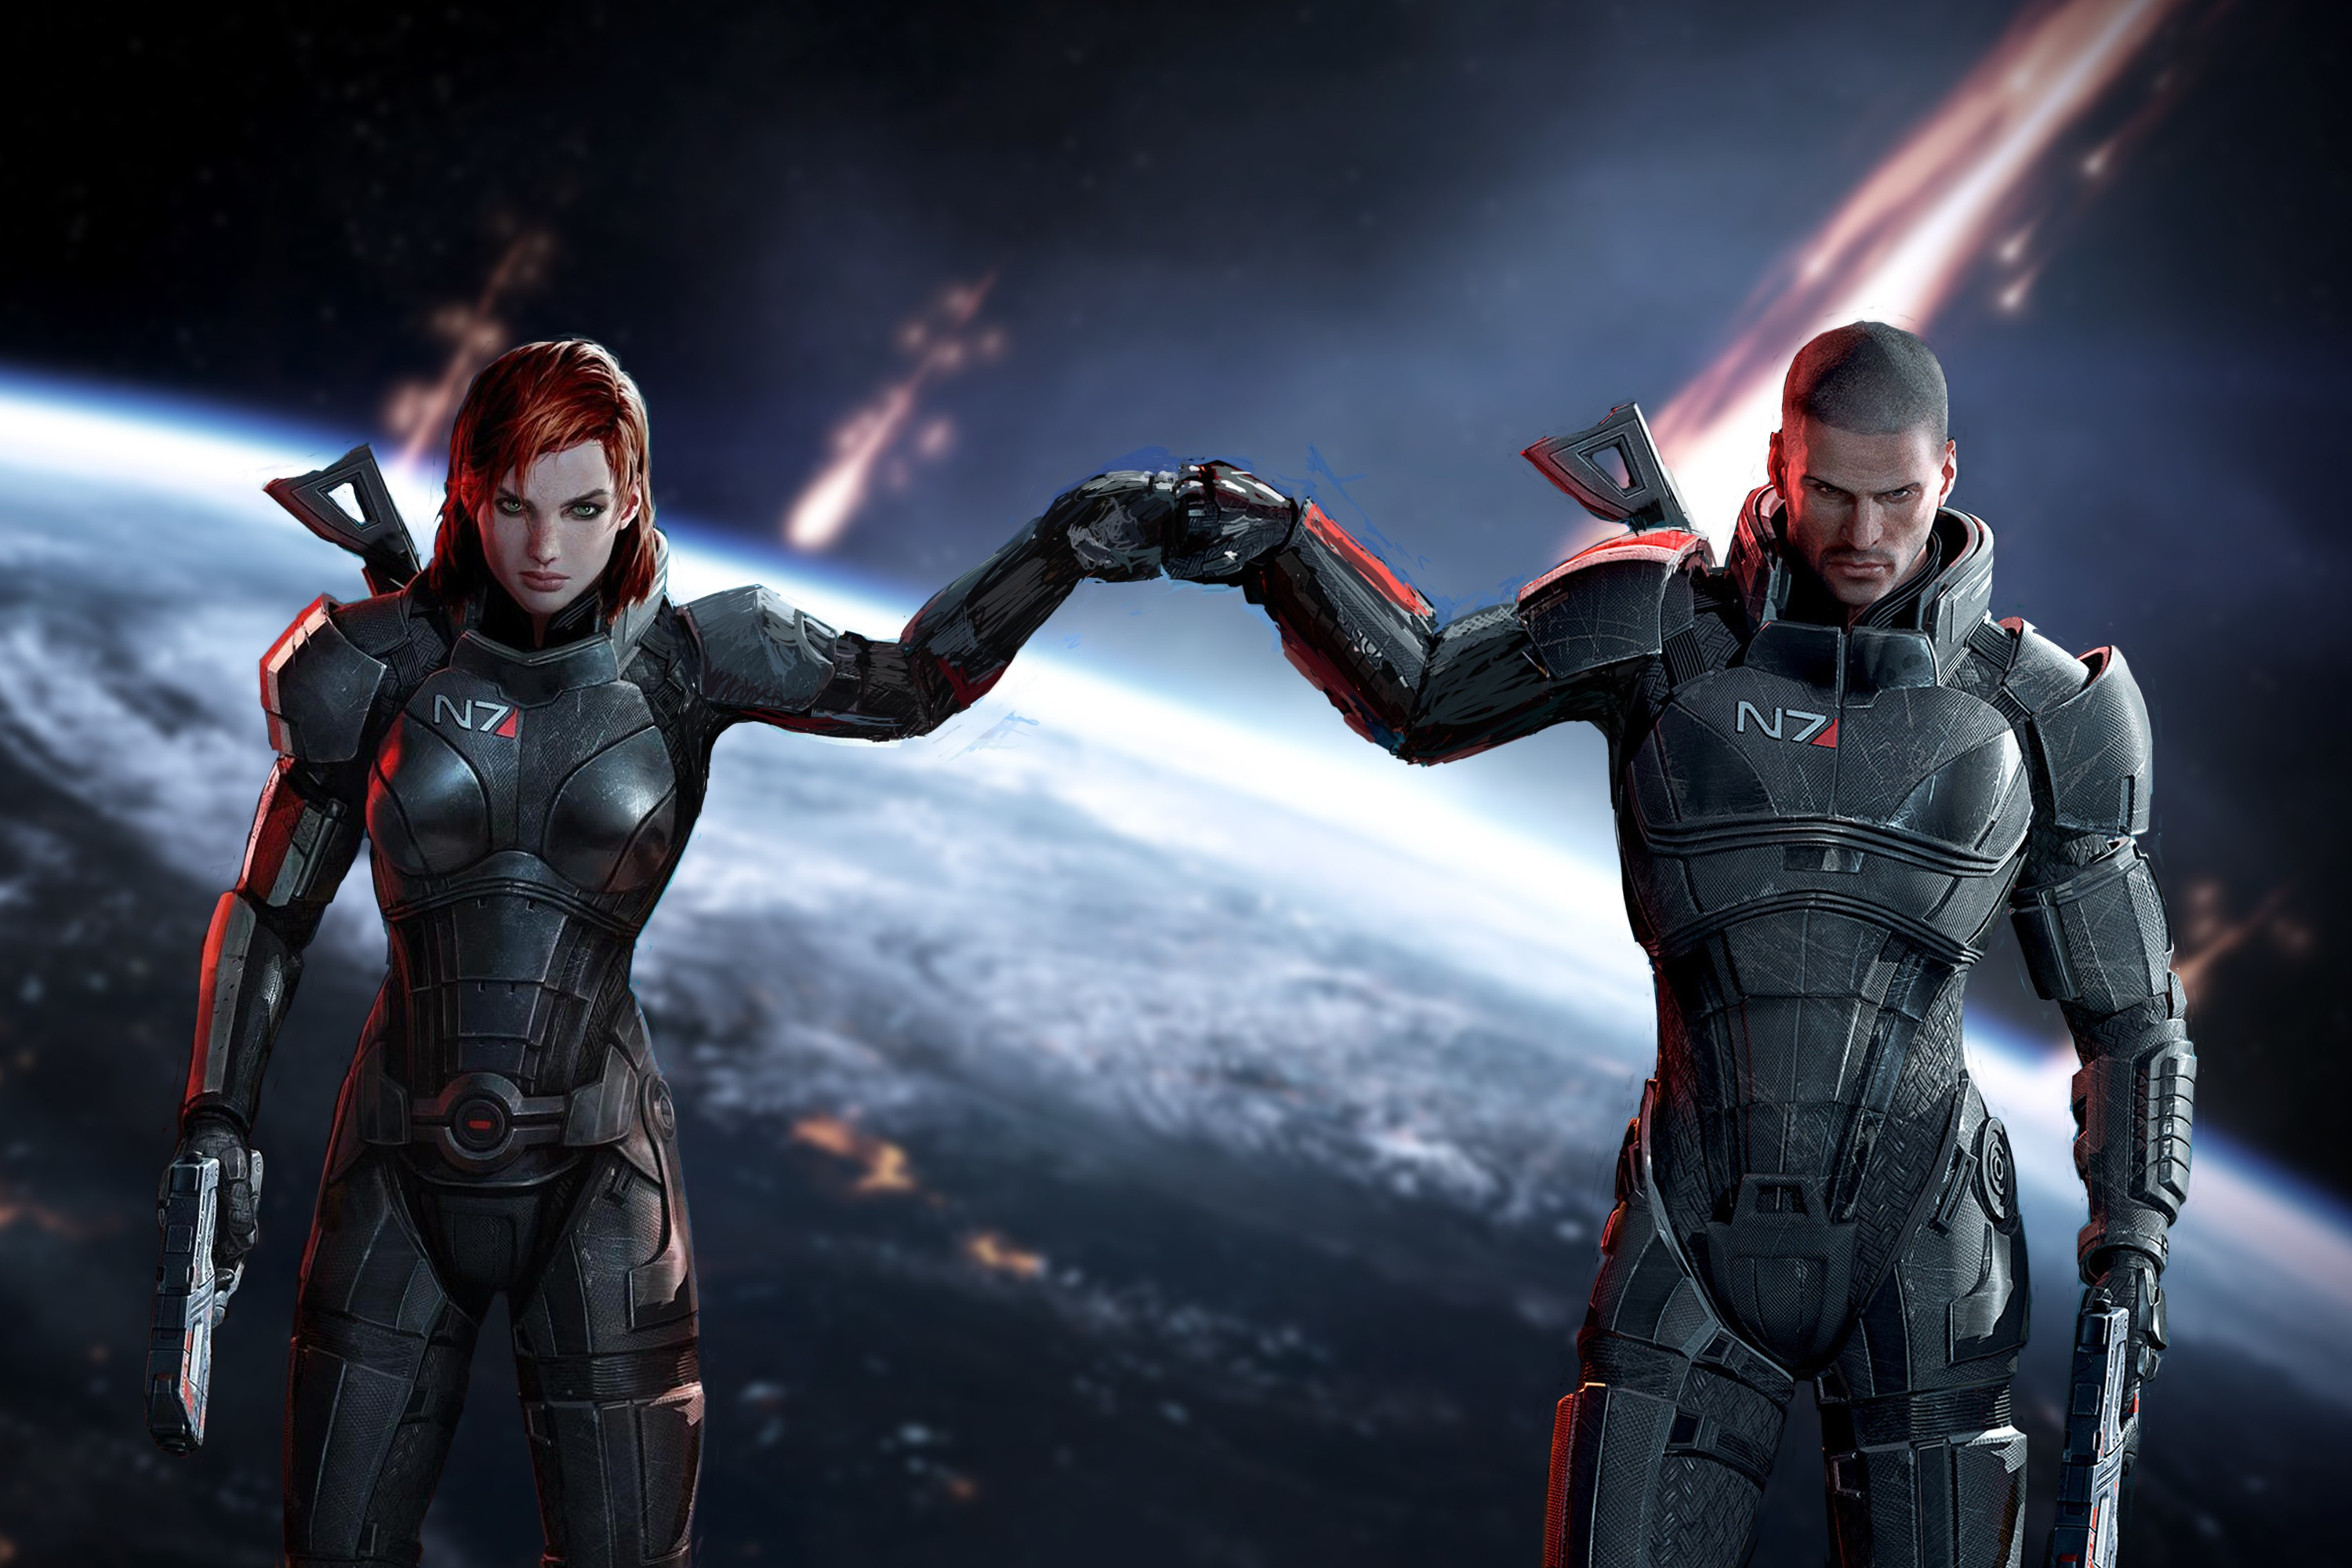 341 Mass Effect 3 Hd Wallpapers Background Images Wallpaper